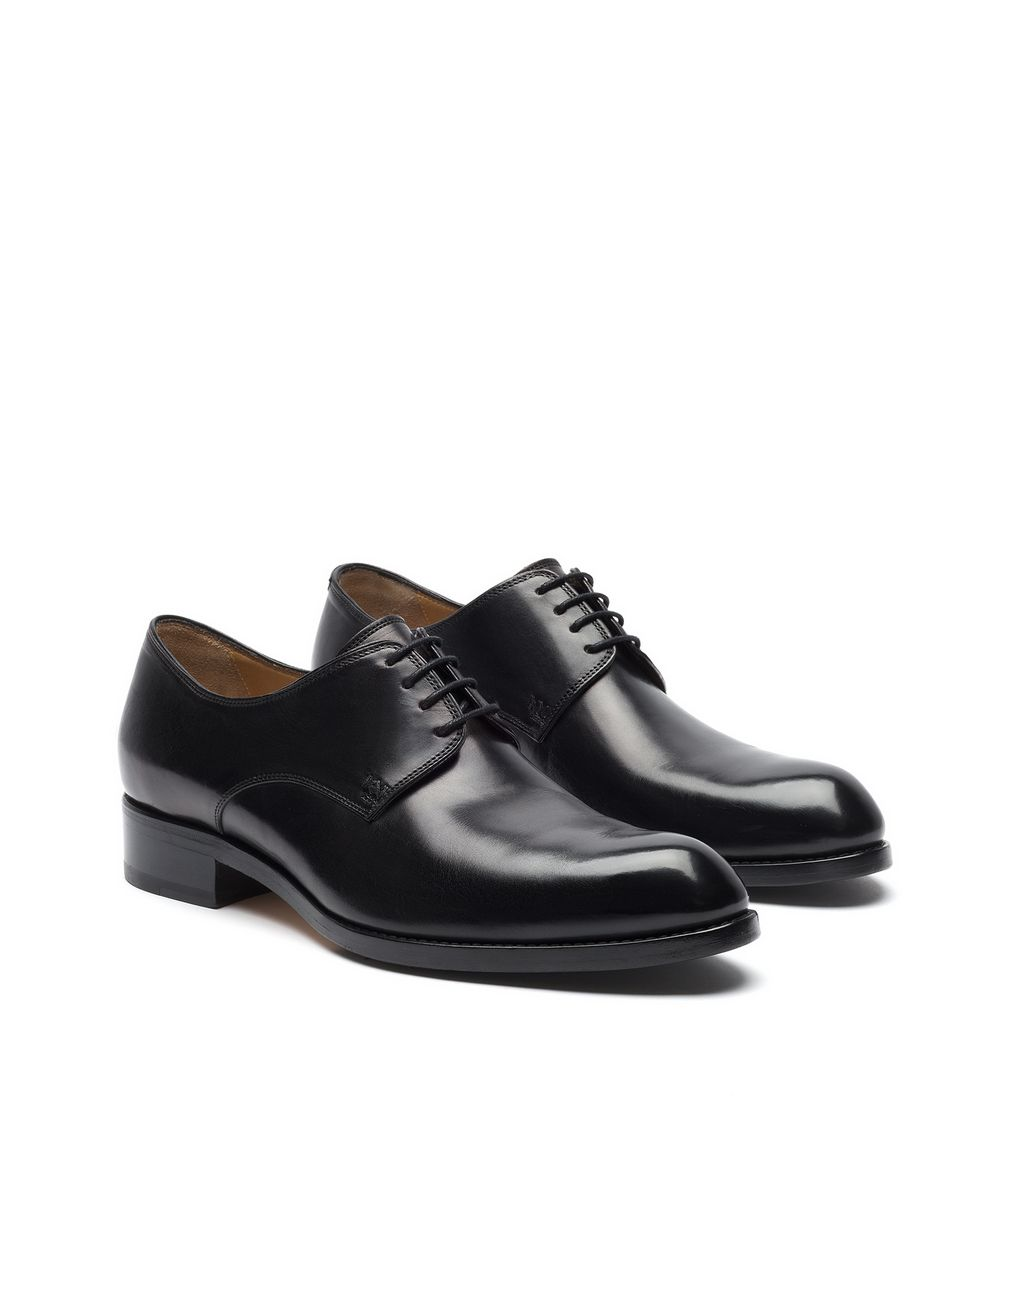 BRIONI Derby Nere in Pelle di Vitello   Calzature Formali [*** pickupInStoreShippingNotGuaranteed_info ***] d